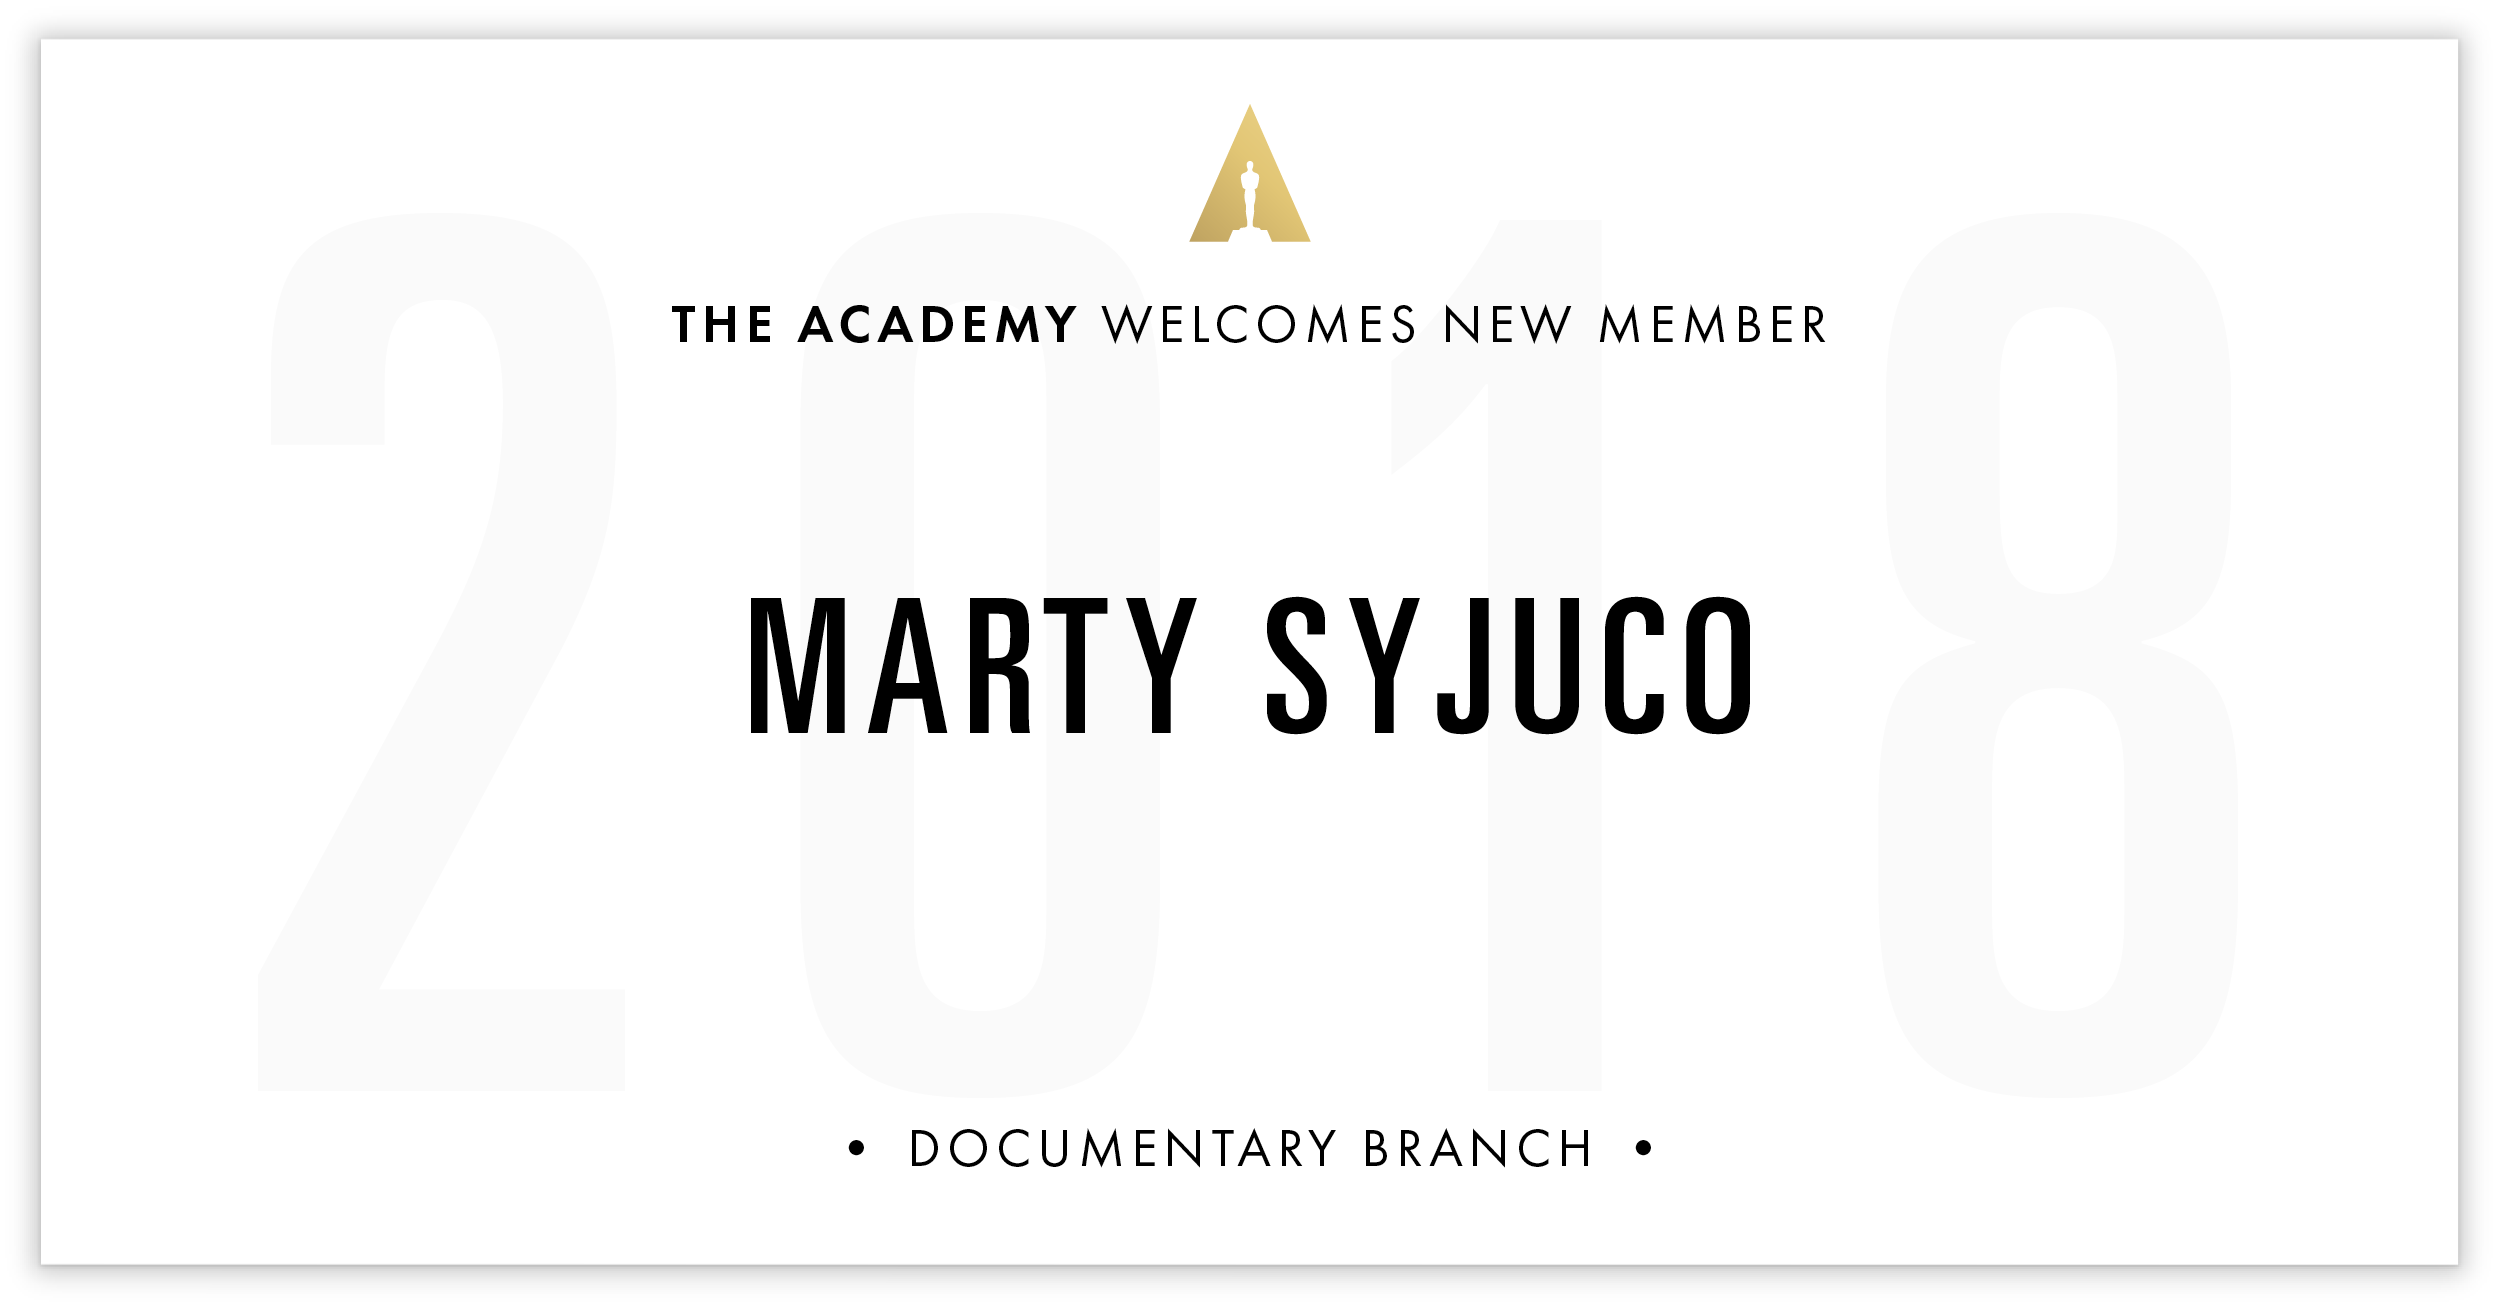 Marty Syjuco is invited!